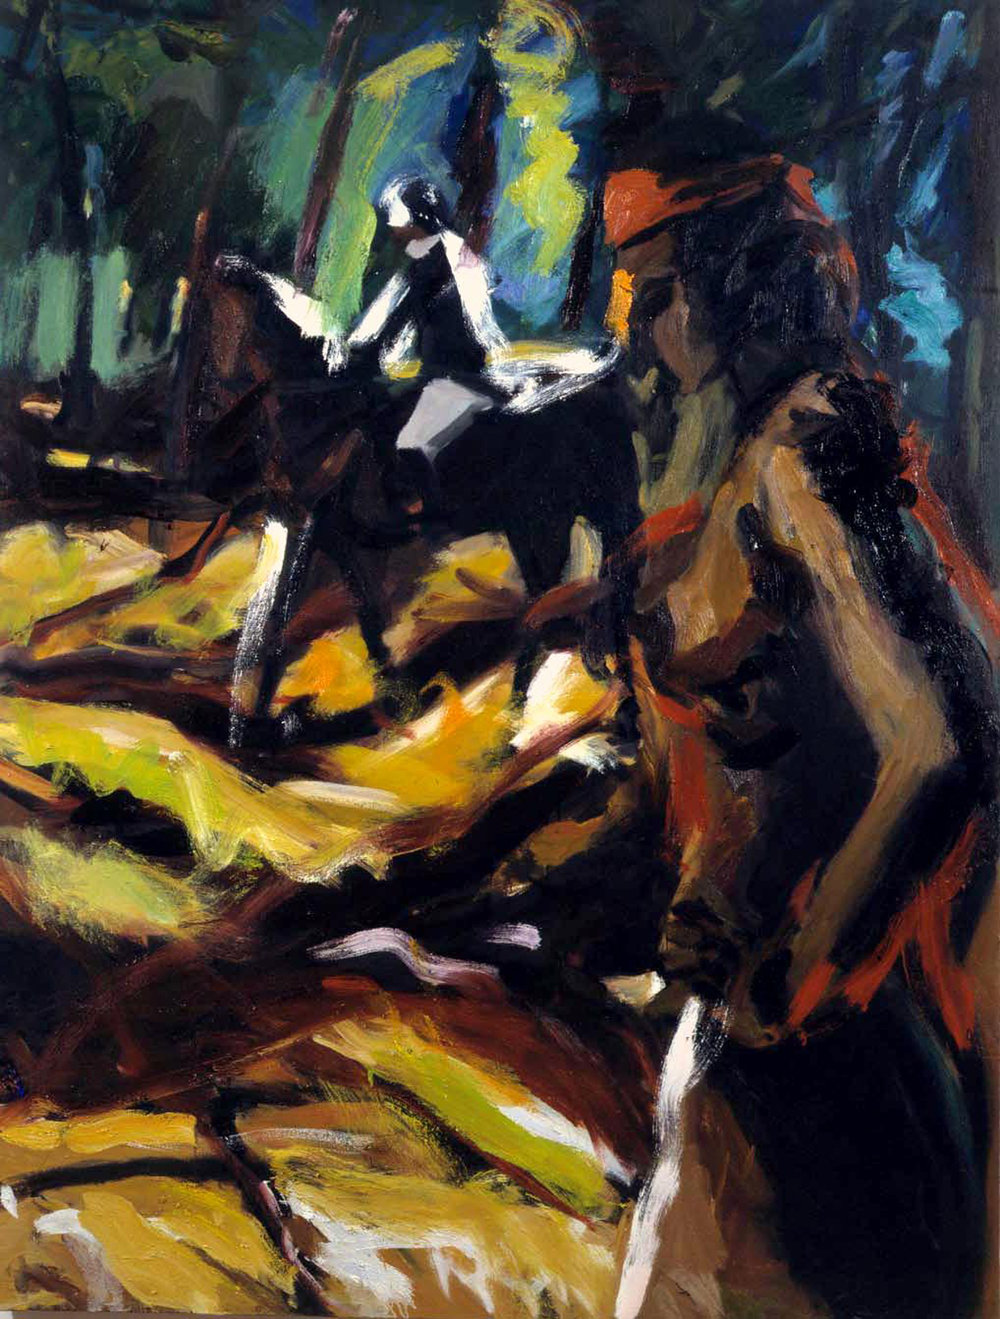 pheonix,-park-1999-oil-  canvas-42x58ins-prvt-ollection, alt text;forest-rider-woman-figureative-painting.jpg